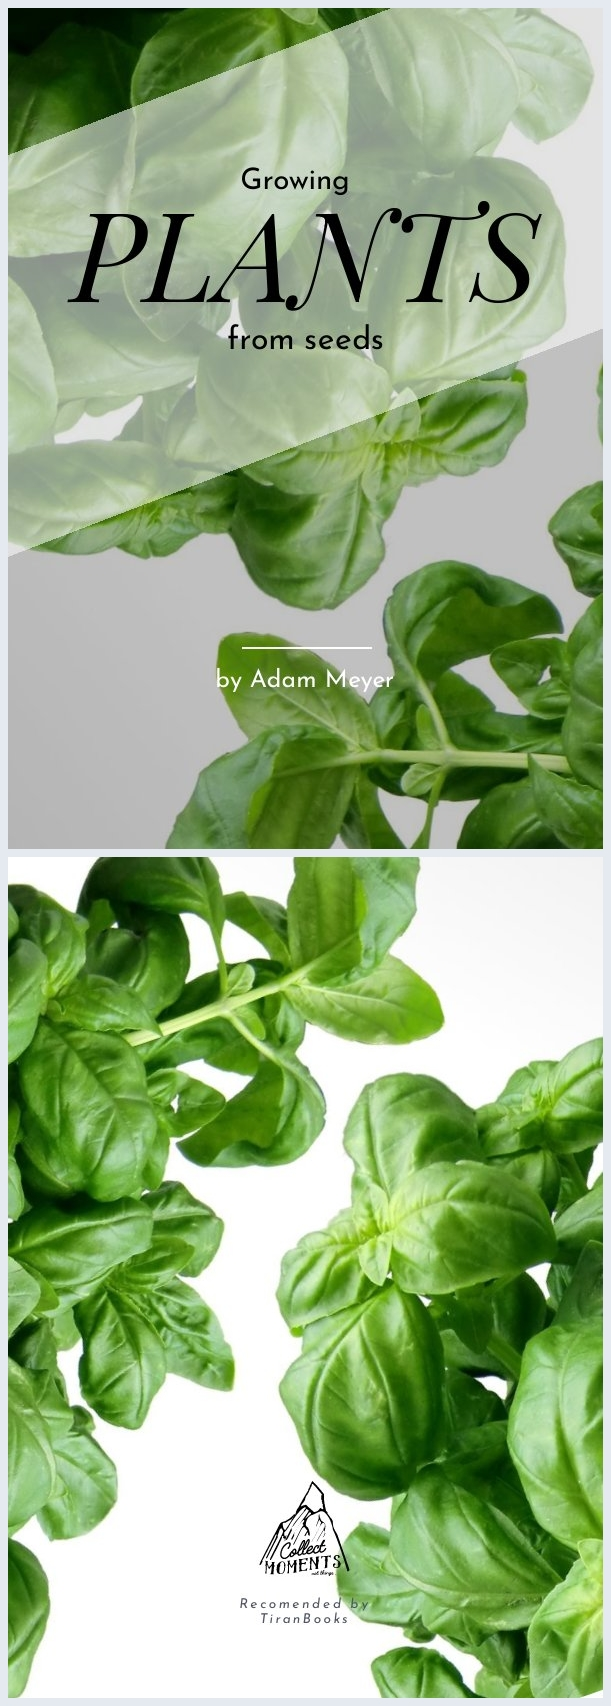 Growing Plants Book Cover